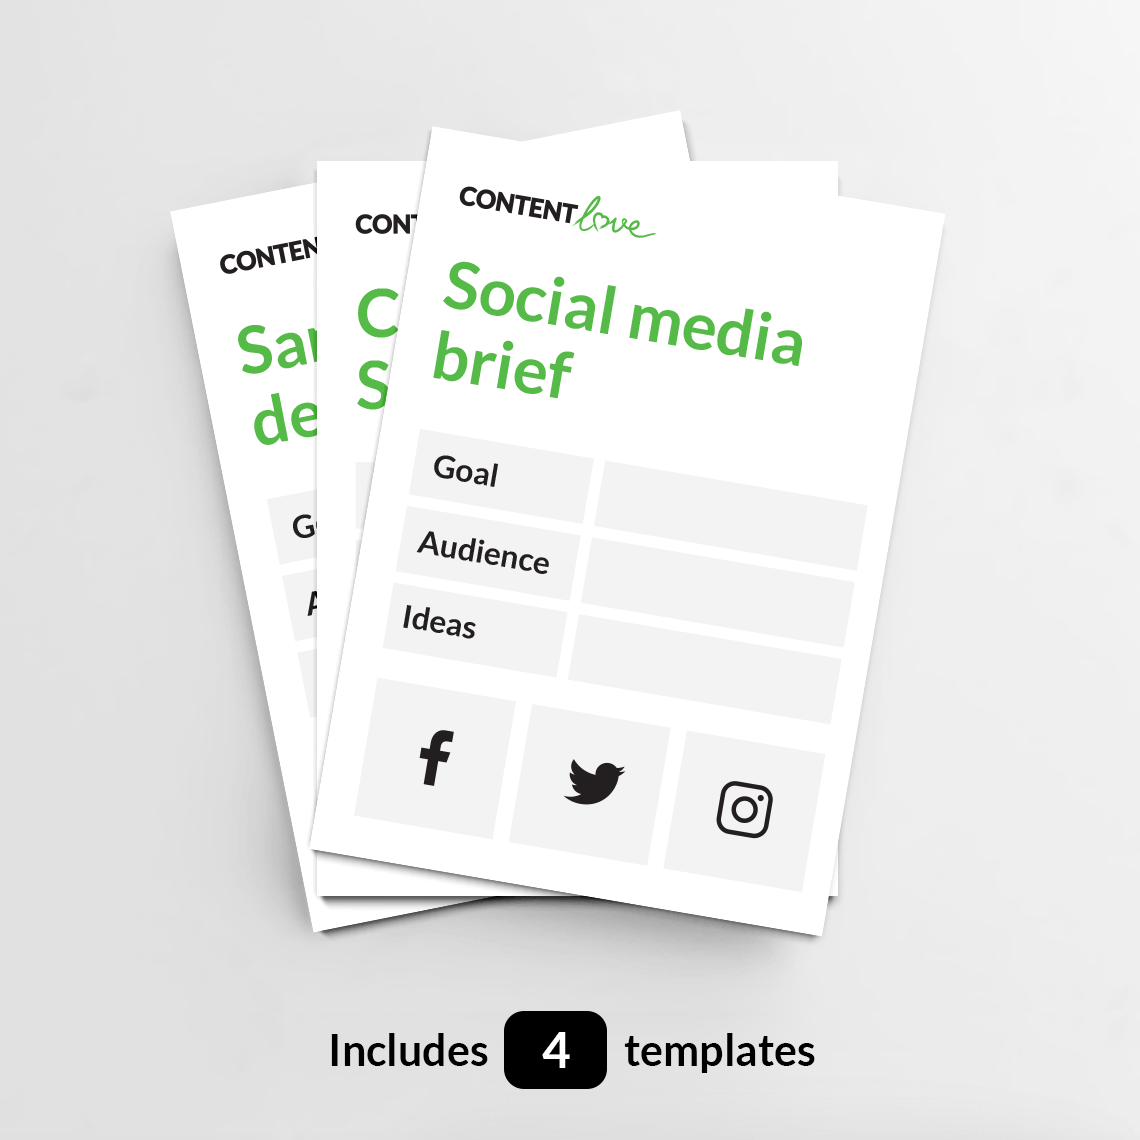 cl-product-social-media-kit